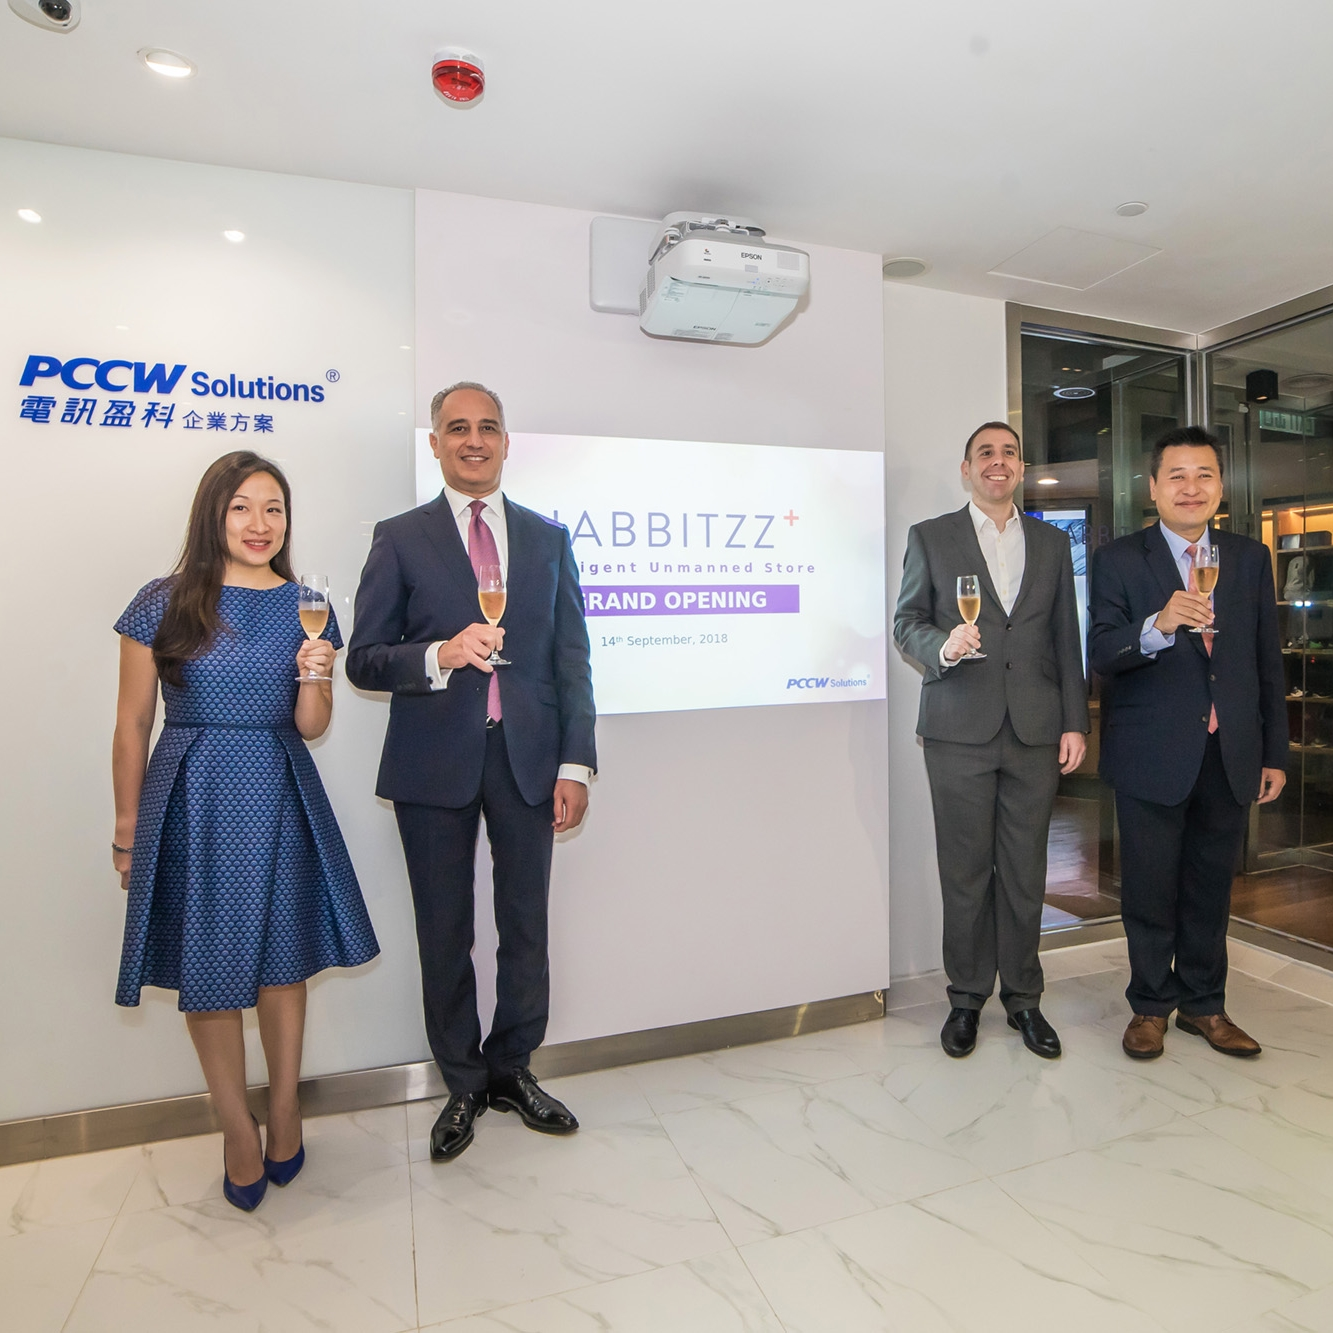 PCCW Solutions in Hong Kong opened its first unmanned store in the city